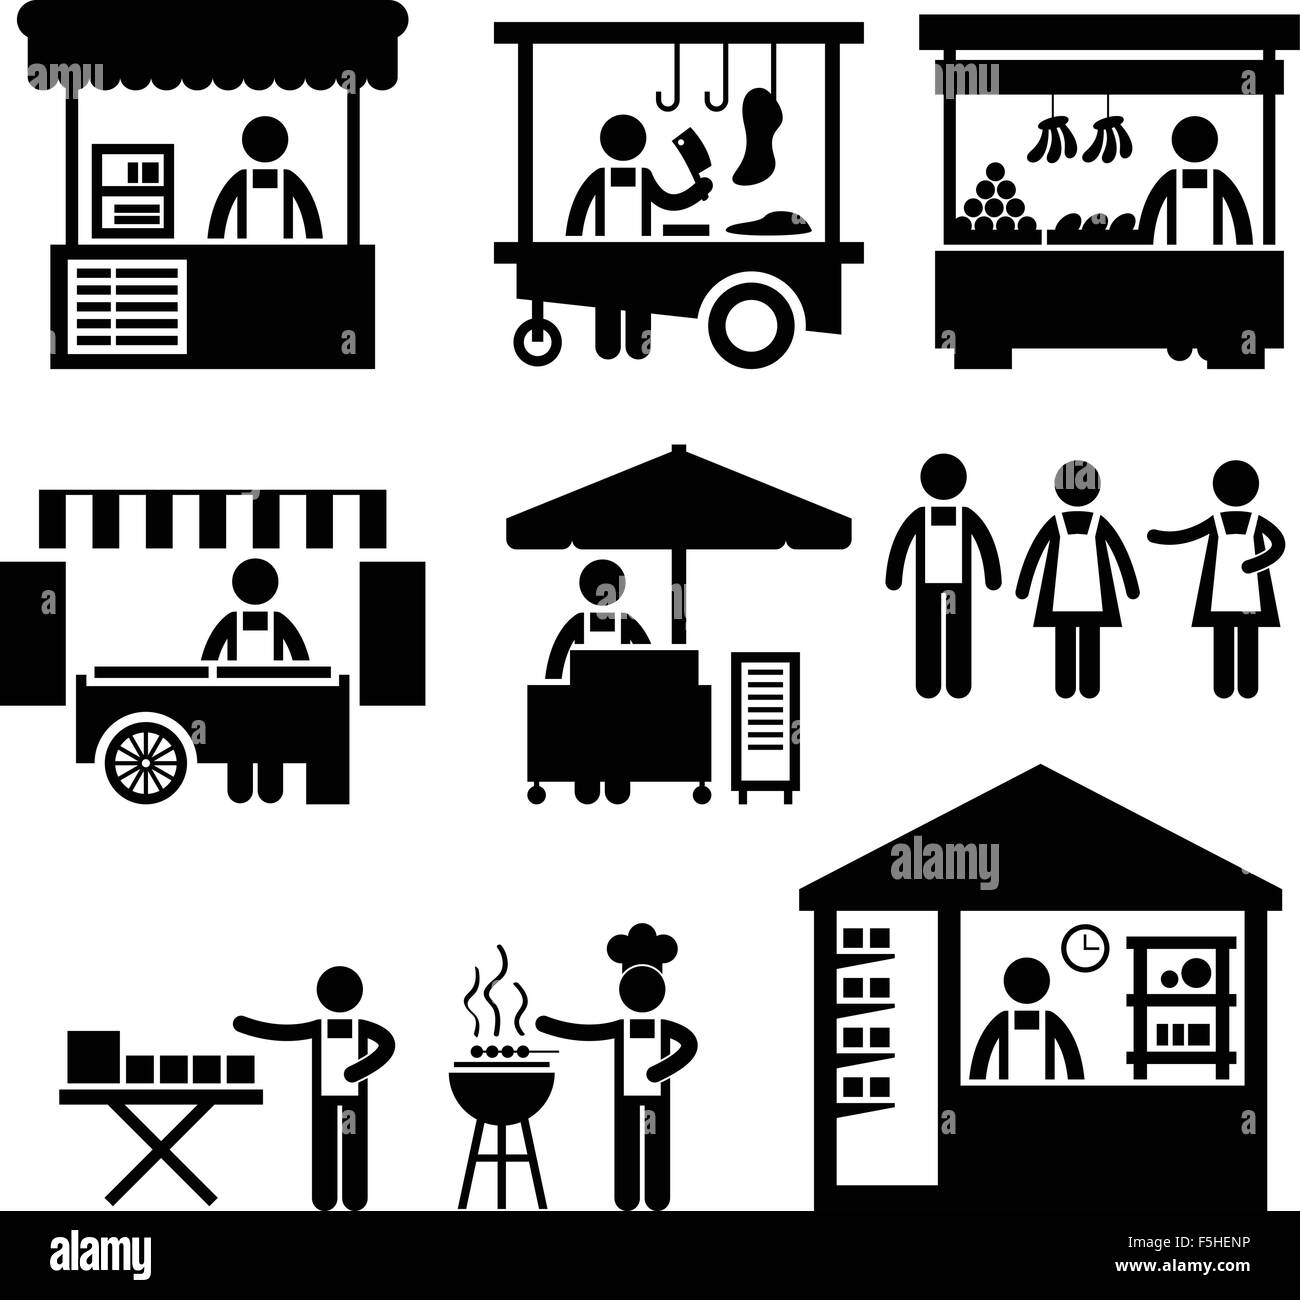 Exhibition Stall Icon Png : Business stall store booth market marketplace shop icon